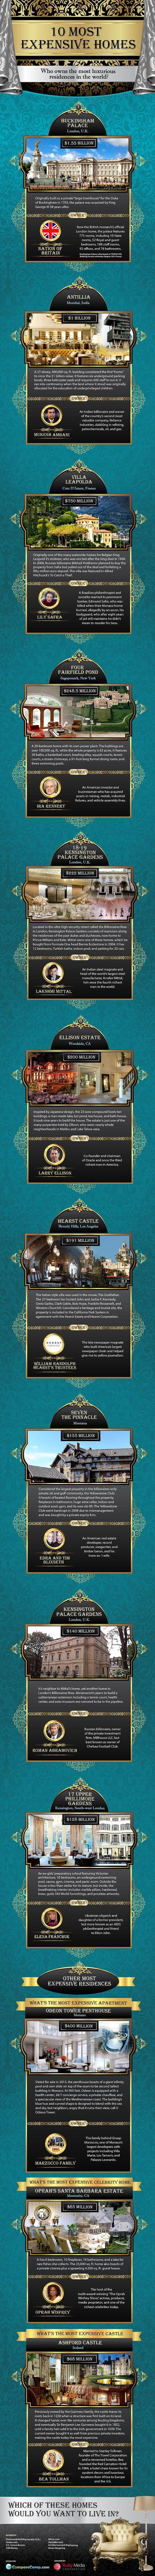 Comparecamp Infographic Reveals The Top 10 Most Expensive Homes In World